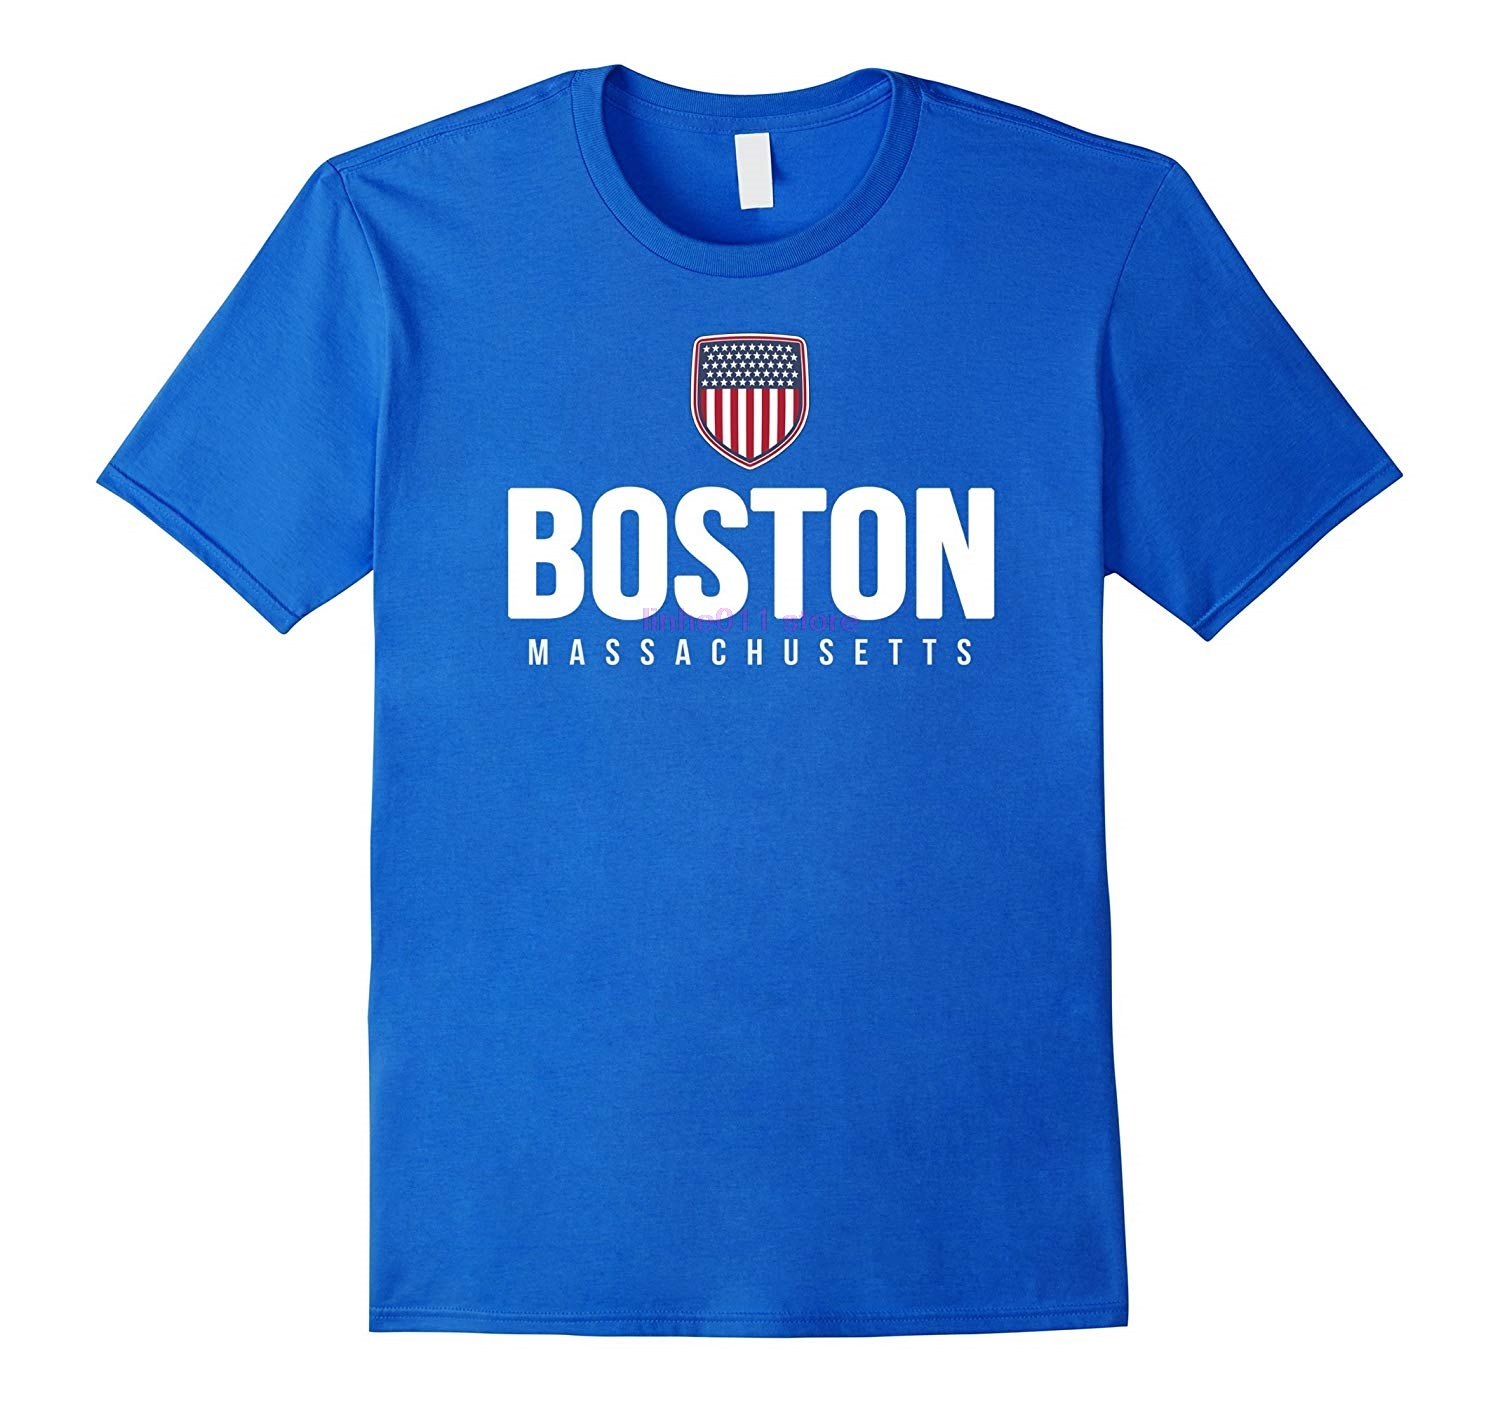 new men shirt Boston <font><b>Massachusetts</b></font> T shirt image